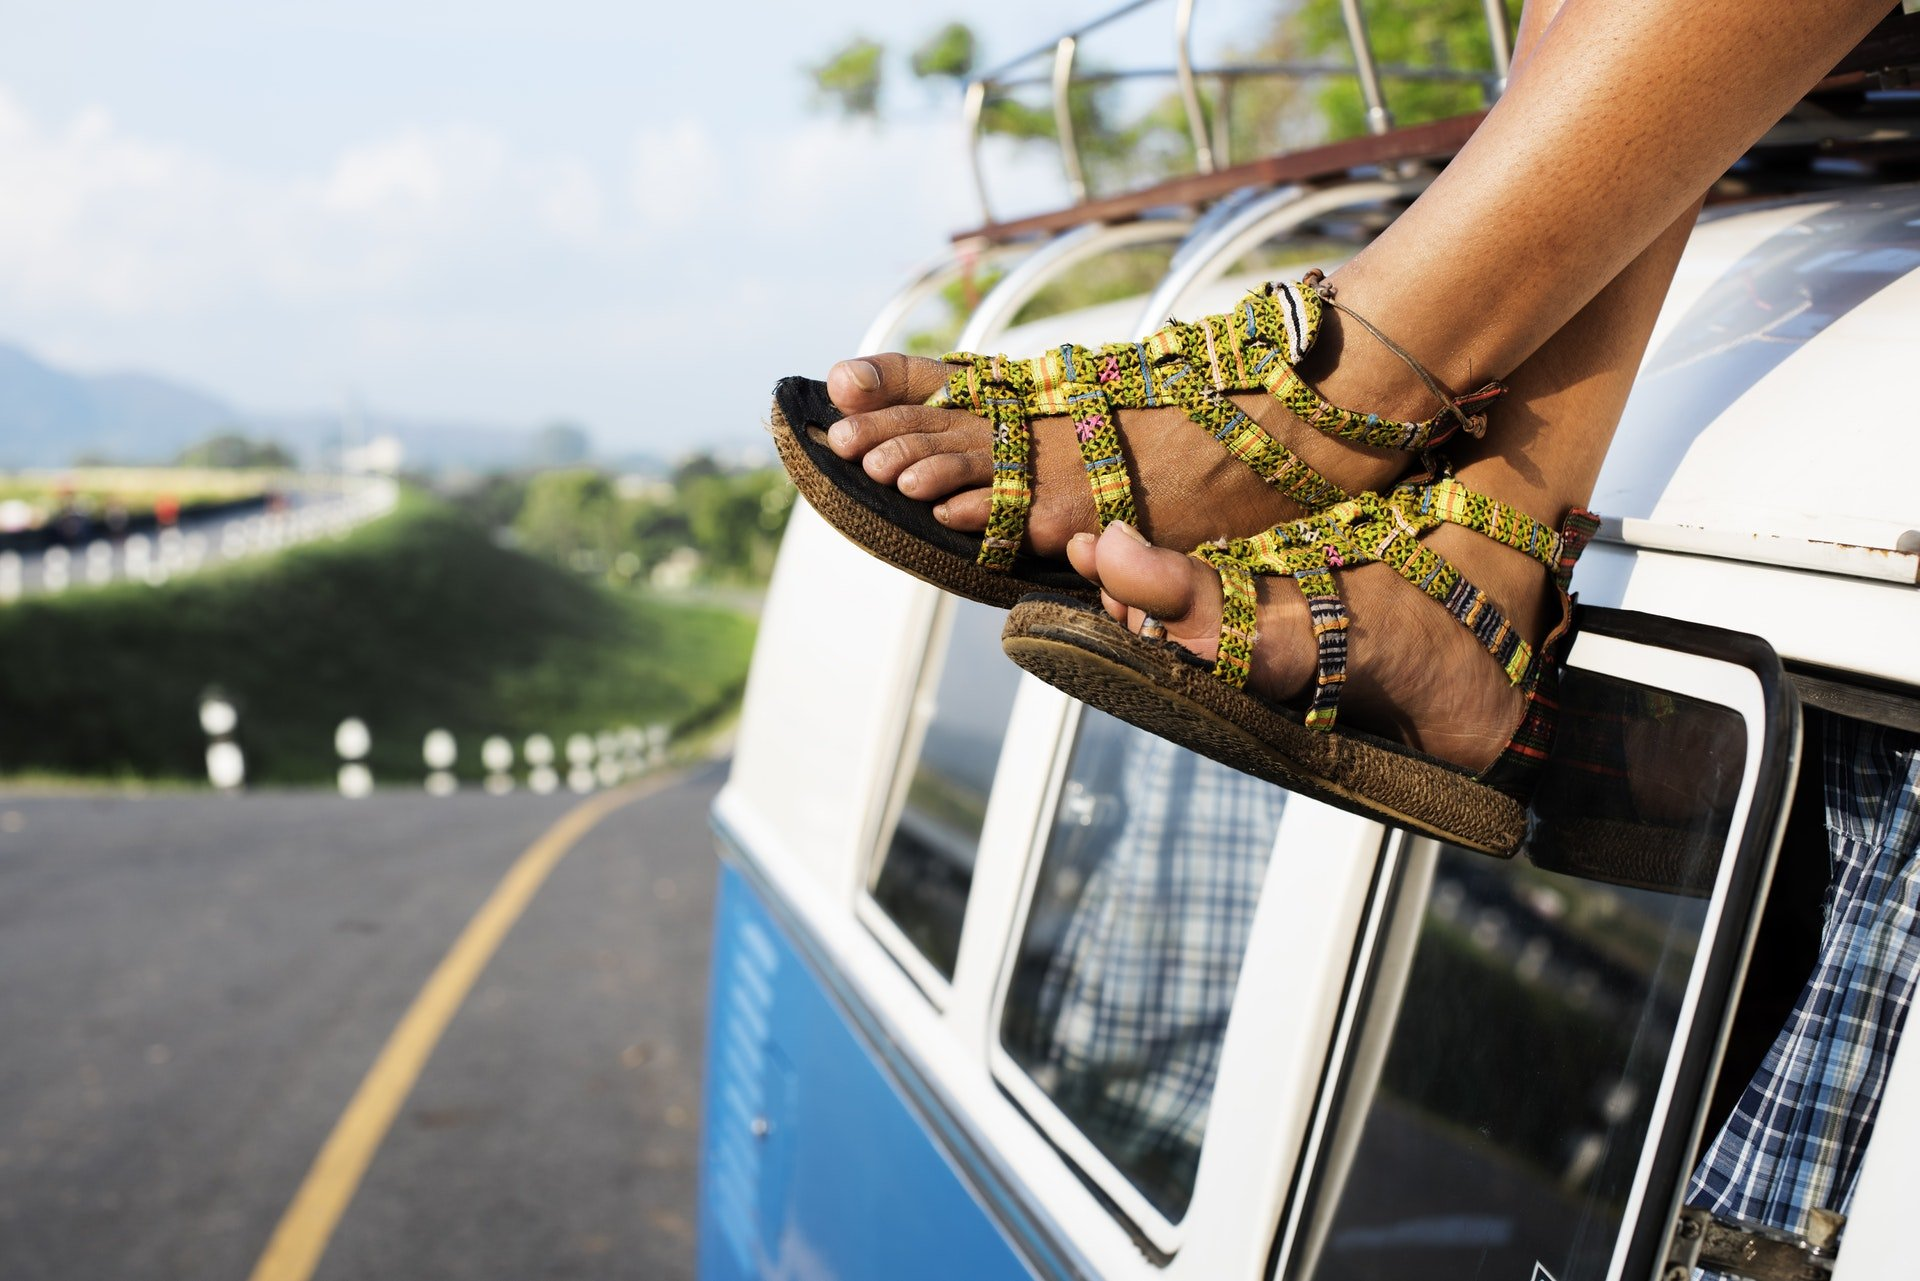 Man's feet dangling from the top of an older RV that is white and blue while on a road trip.